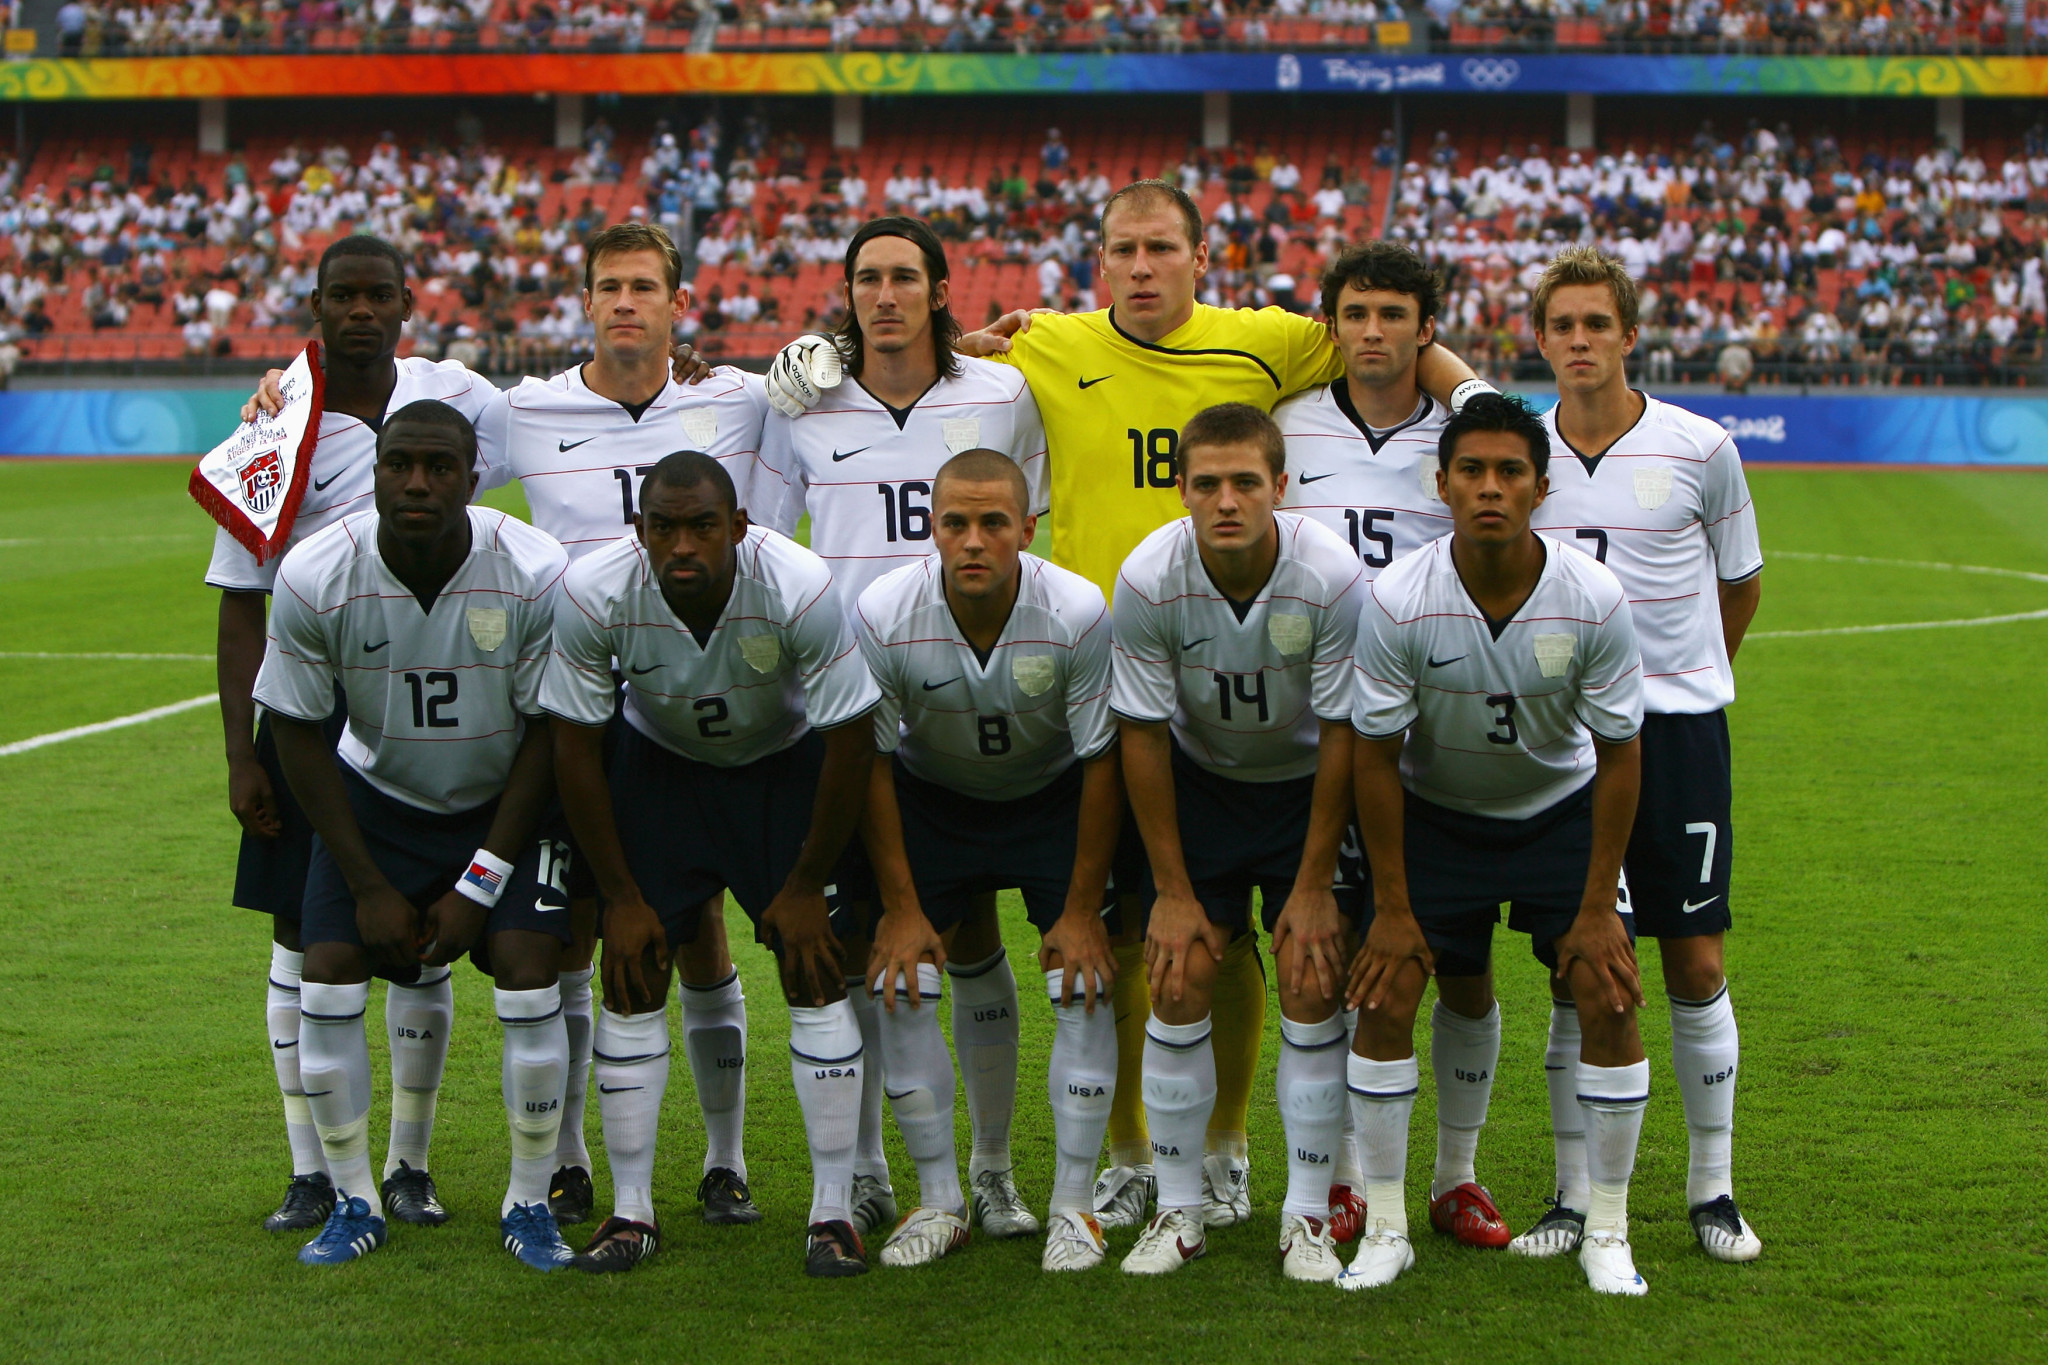 The United States last appeared in the men's football Olympic tournament at Beijing 2008 ©Getty Images